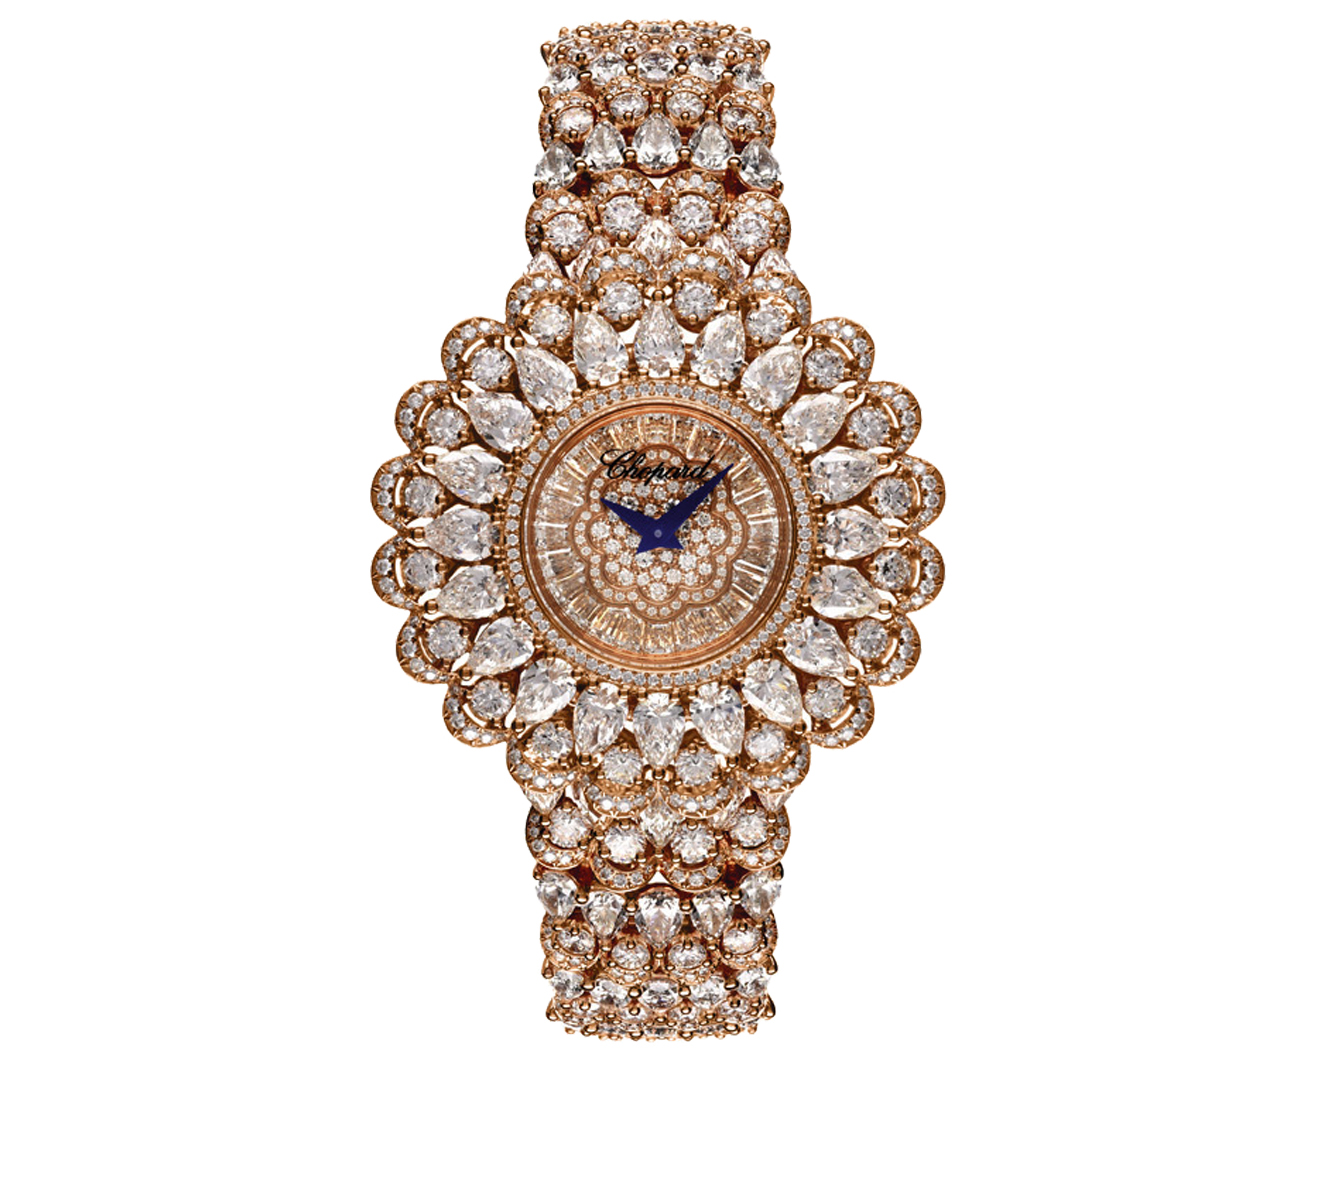 Часы High Jewellery Chopard High Jewellery 104427-5002 - фото 1 – Mercury